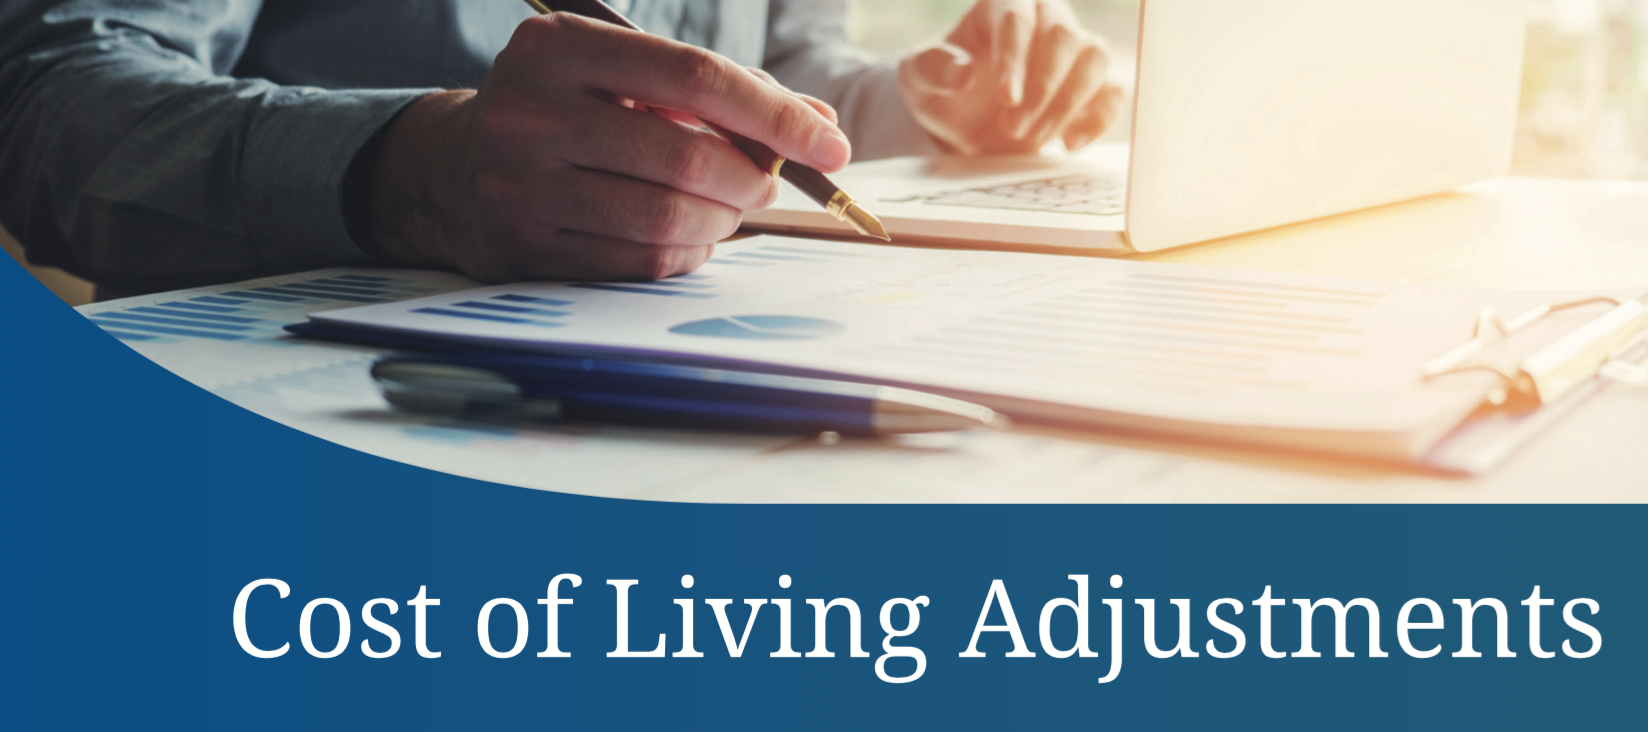 2019 Cost of Living Adjustments